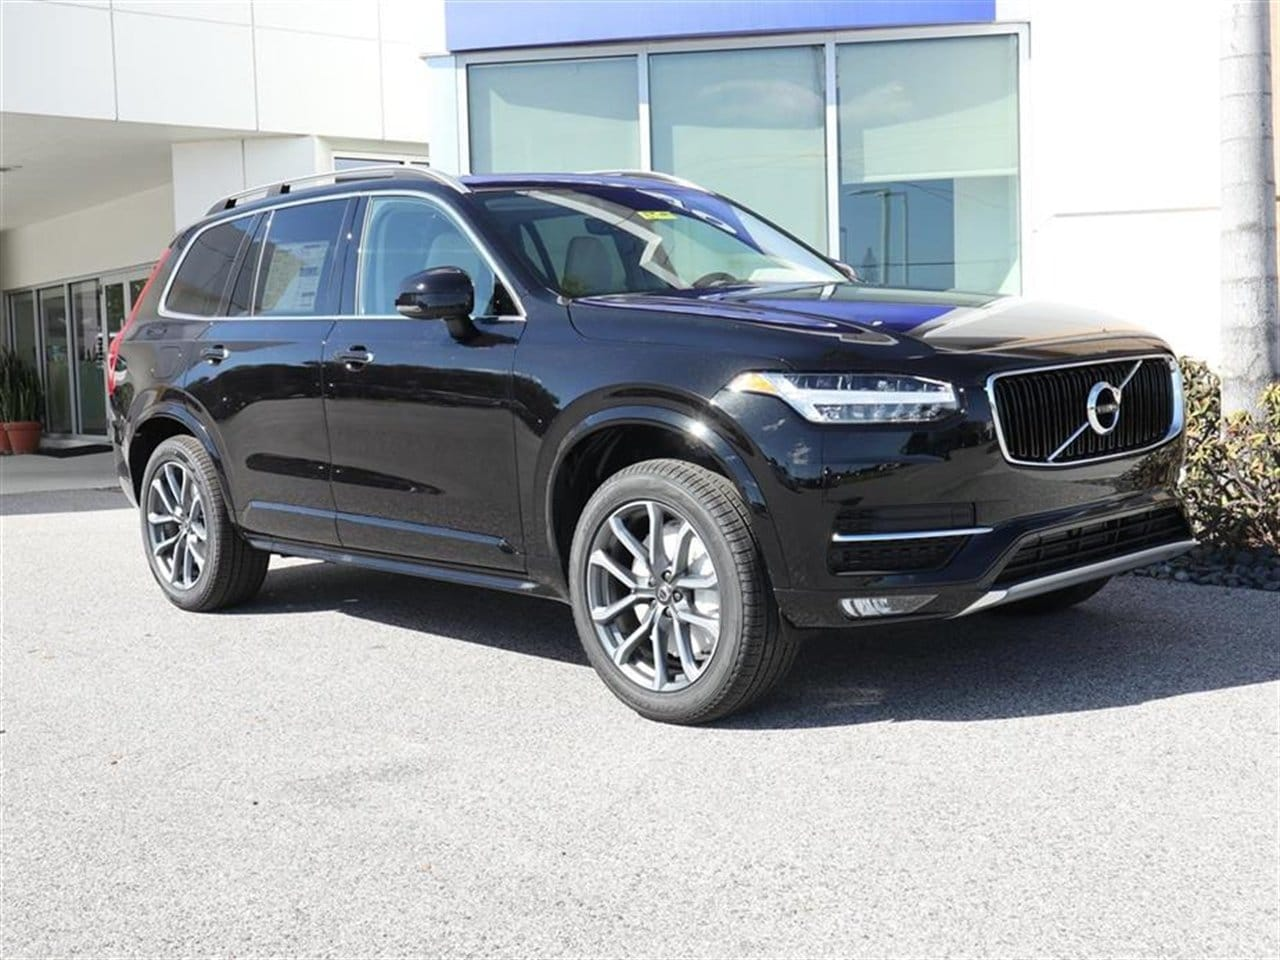 2019 Volvo XC90 T6 Momentum SUV for sale in Sarasota, FL